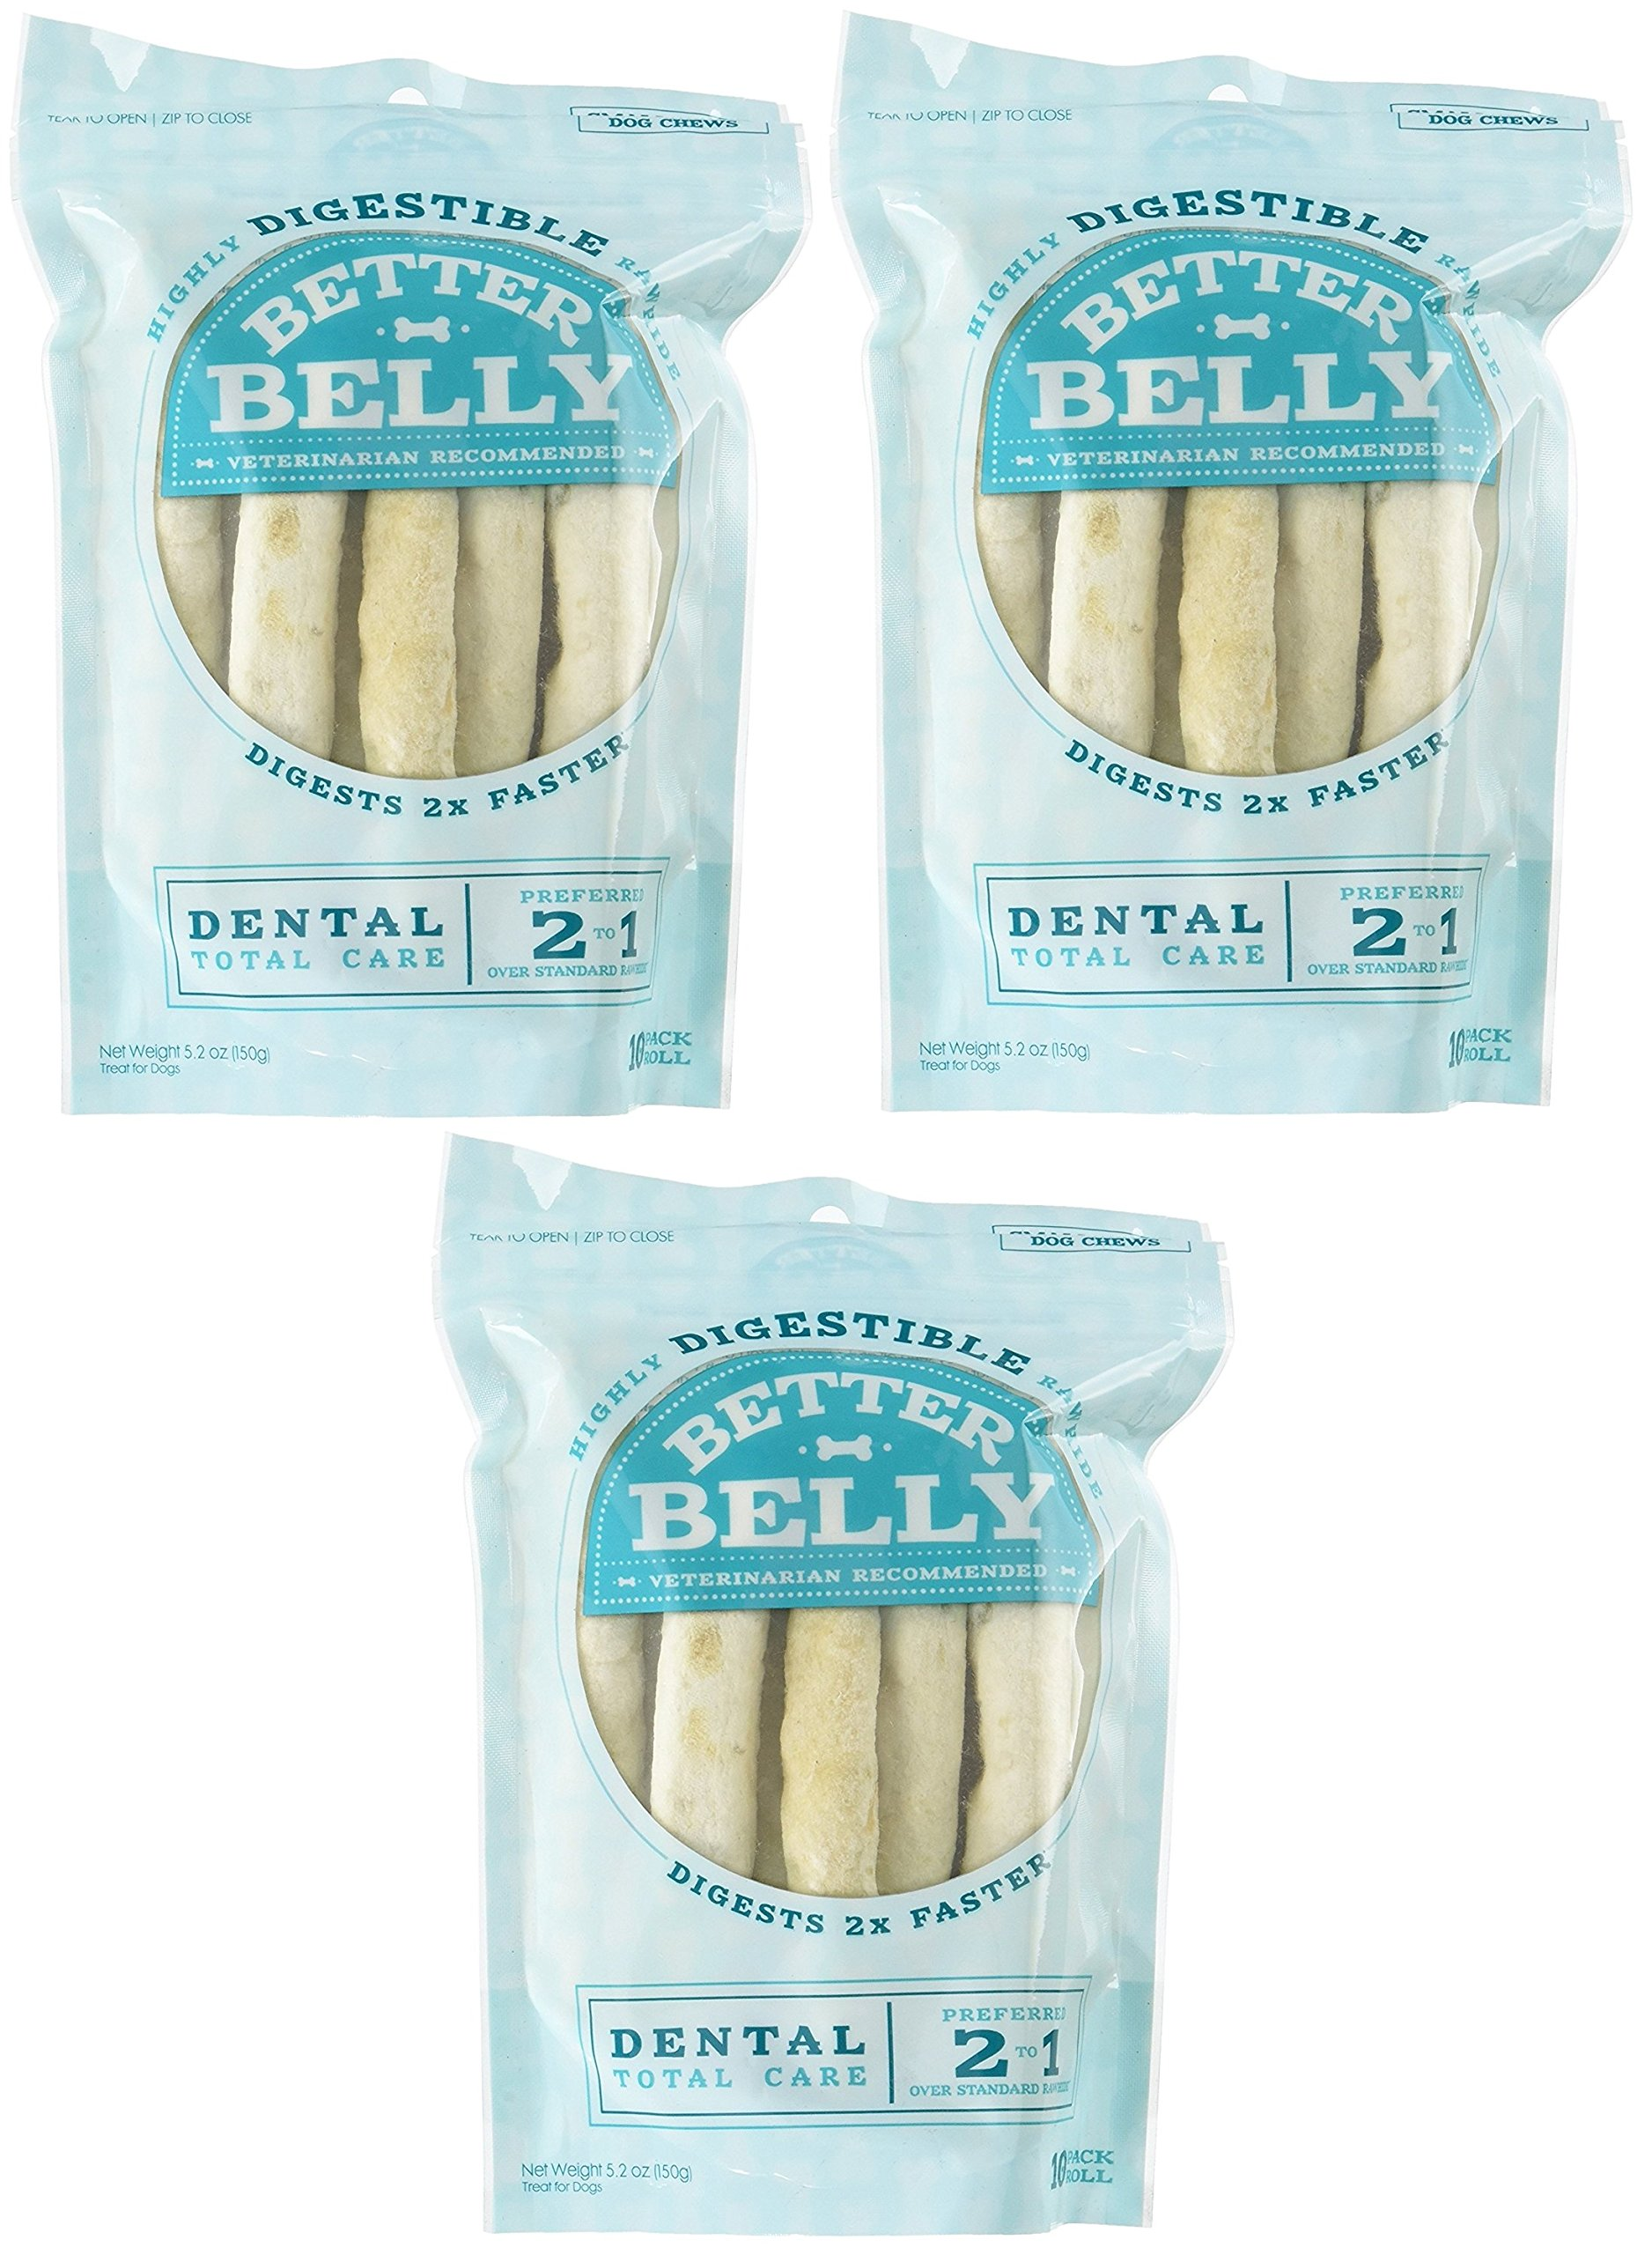 (3 Pack) Better Belly Small Dental Rolls by Better Belly